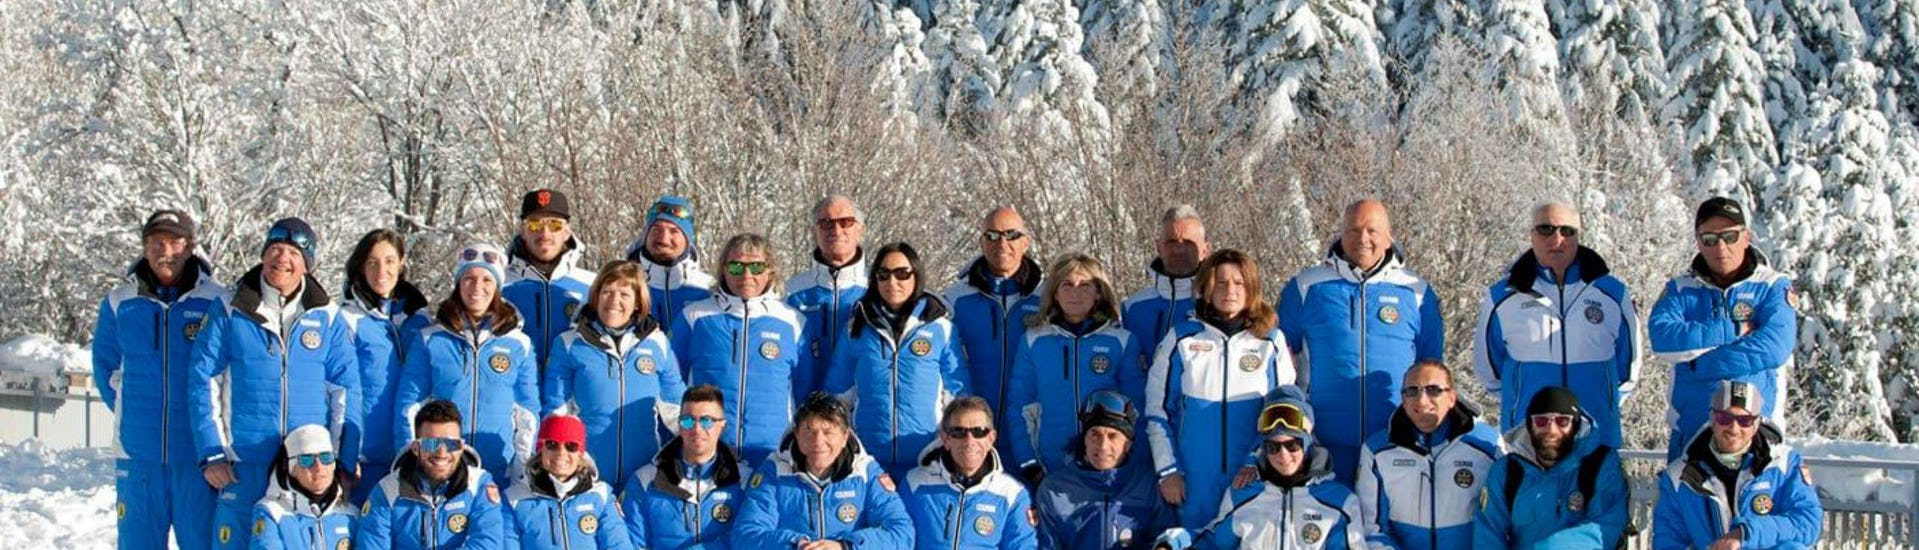 The ski instructors from the ski school Scuola di Sci Abetone are gathered in the snow with smiling faces that invite everyone to join their ski lessons.